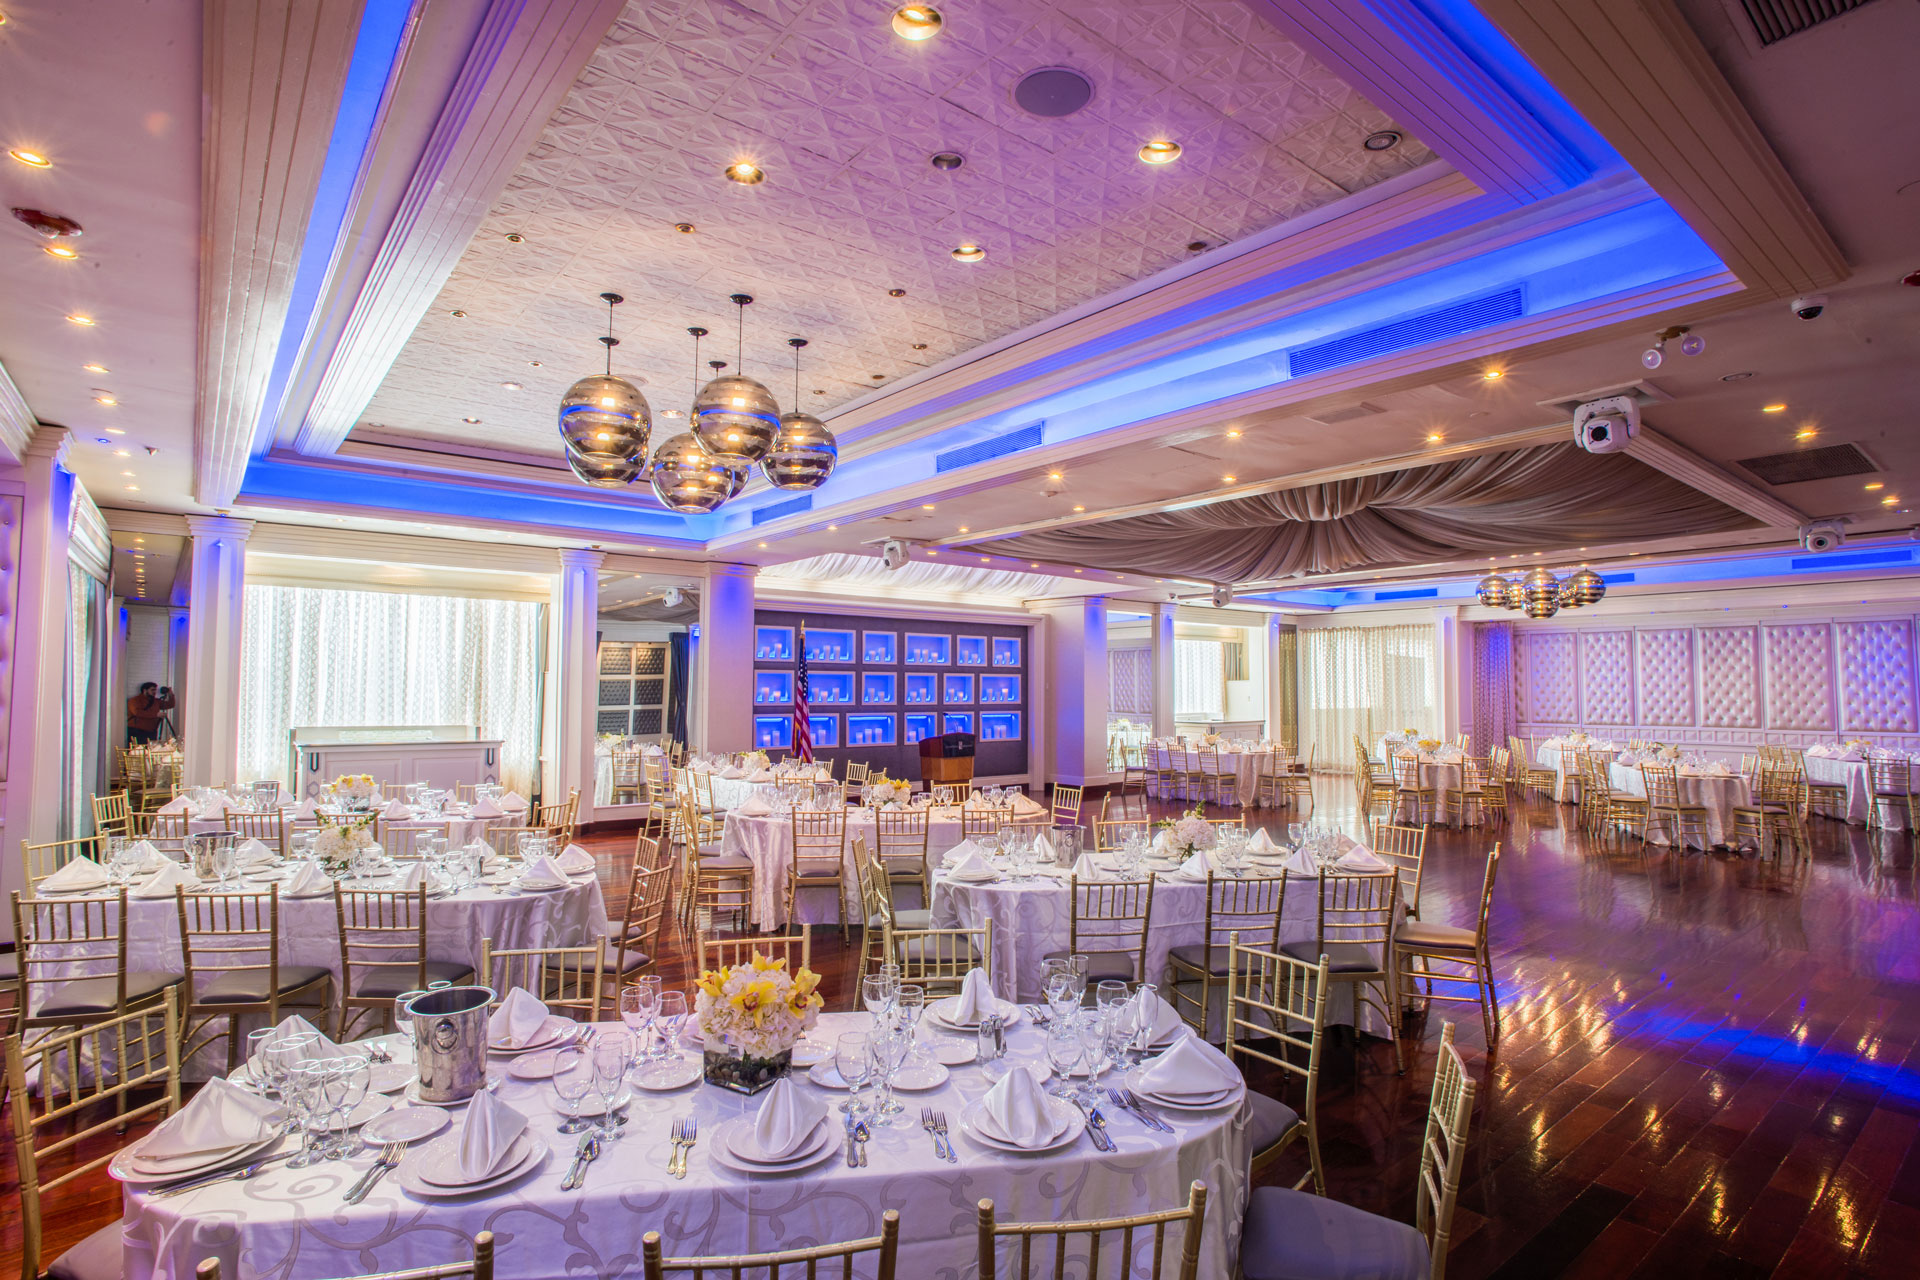 An Ideal Long Island Meeting Space Whether you're planning a corporate retreat, sales meeting, seminar or team-building event, Chateau Briand is the unique Long Island event venue that's key to your success. Easily accessible from all major highways and parkways on Old Country Road, Chateau Briand is the perfect Long Island destination for all of your most crucial business meetings, especially when our location is paired with the deft touch and expertise of our highly experienced staff. Chateau Briand's professional meeting spaces are ideal for corporate events and allow our staff to coordinate each and every element of your professional needs.   With wifi services, state-of-the-art meeting equipment, A/V capabilities, and savvy staff, your business gathering will impress clients, colleagues, family, and friends. And after the meetings conclude, enjoy the area's nearby shops and restaurants, all poised to close the deal on a successfully constructive corporate event.